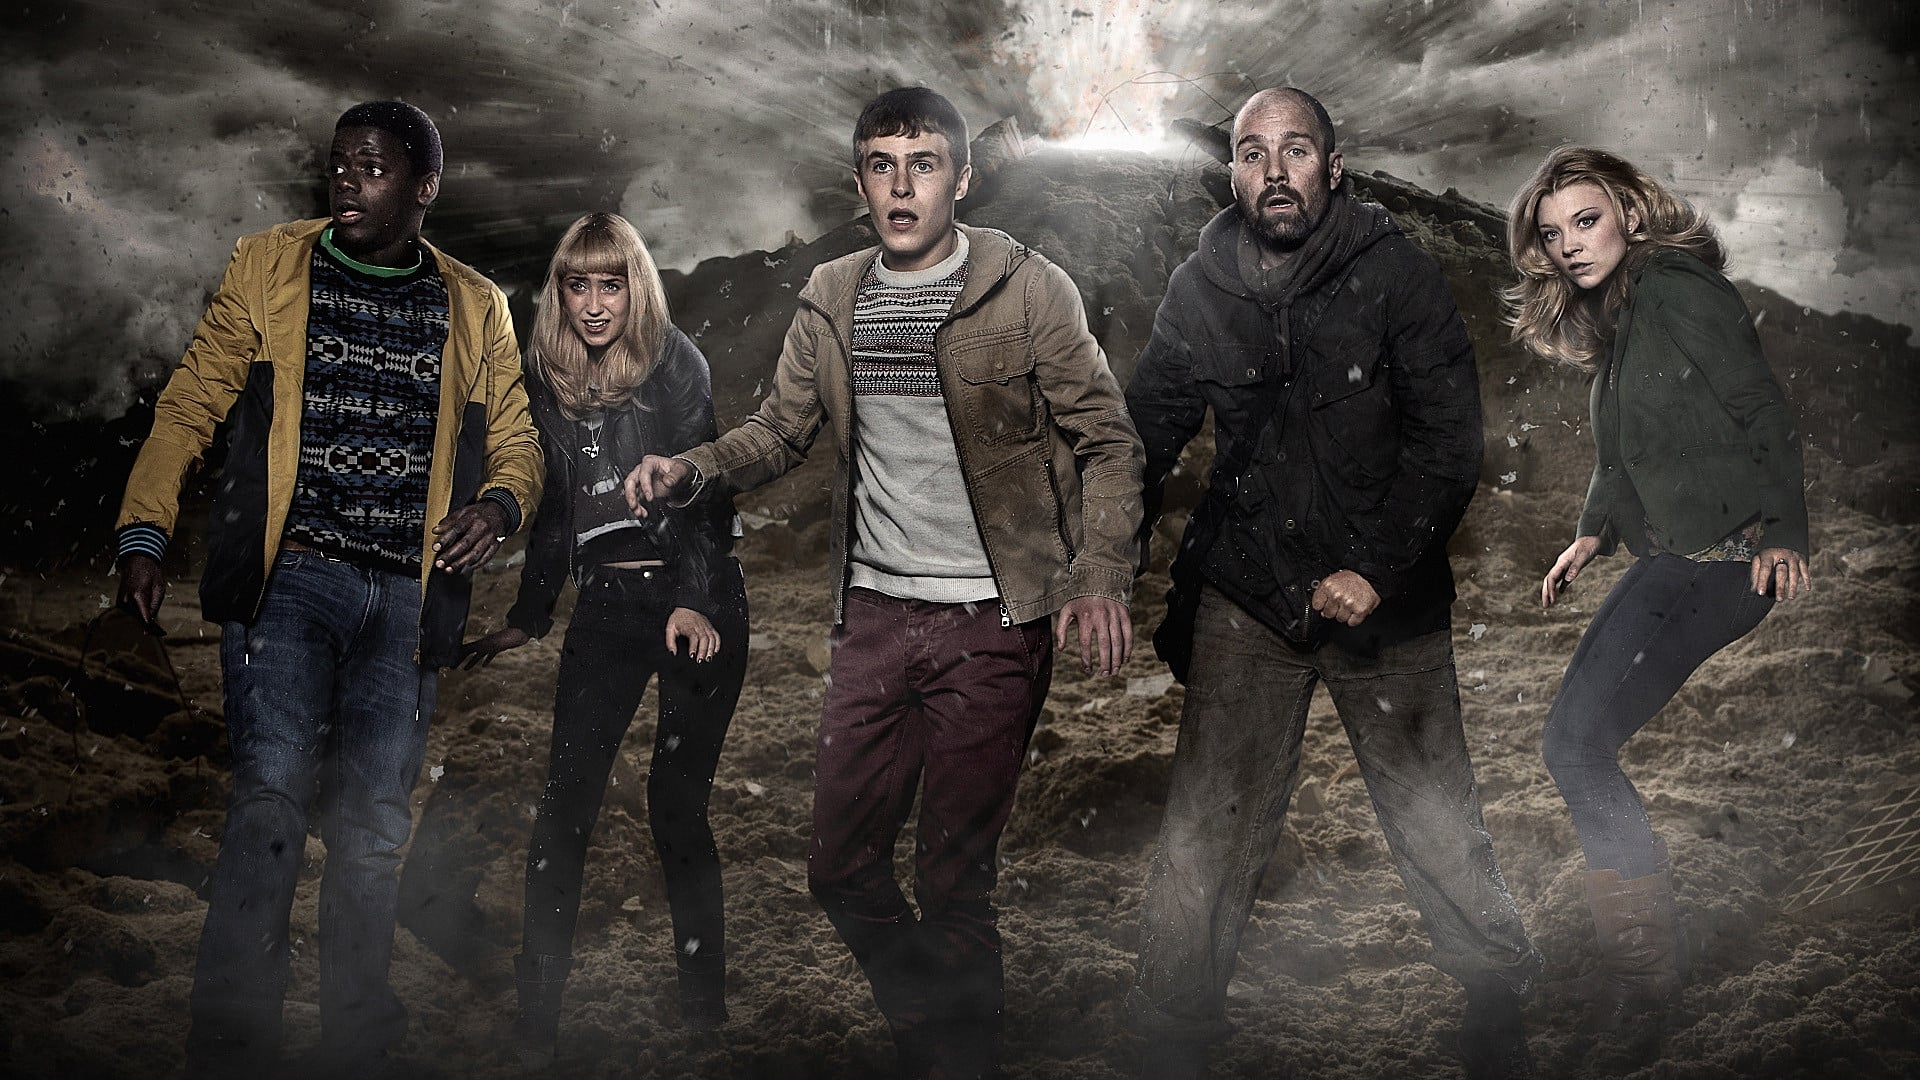 Character line-up - (l to r) Daniel Kaluuya, Lily Loveless, Iain De Caestecker, Johnny Harris and Natalie Dormer in The Fades (2011)